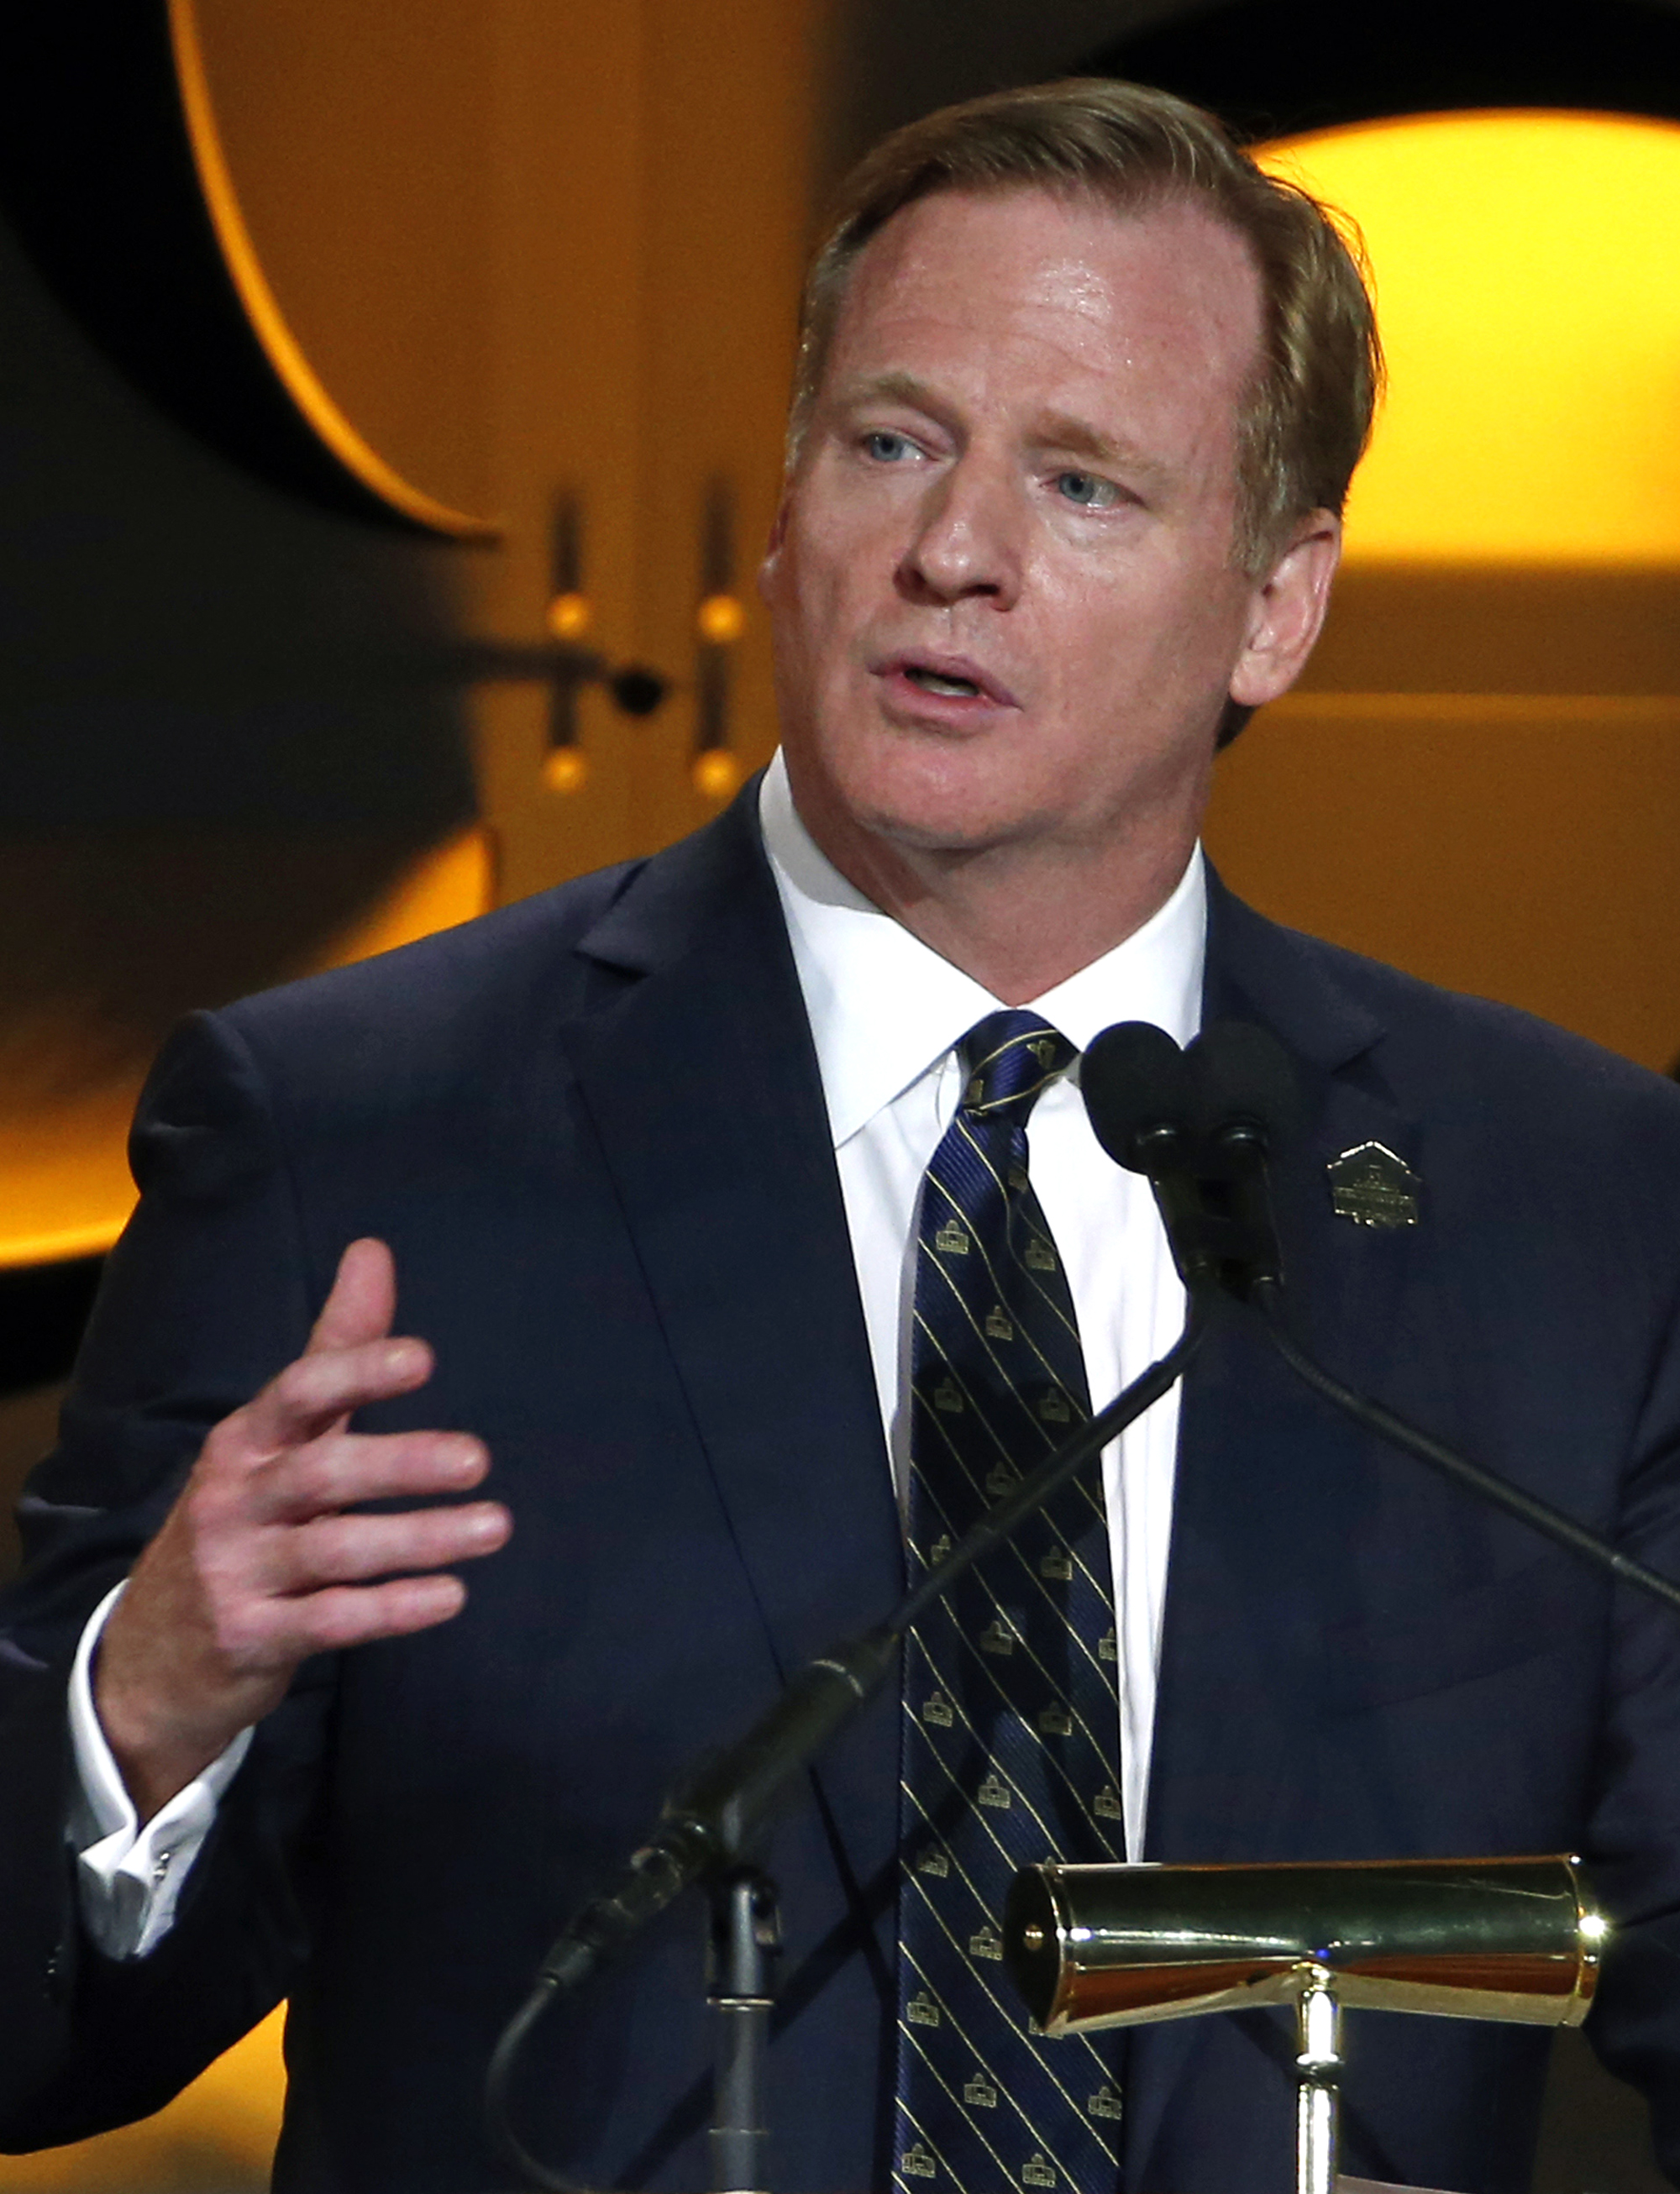 """FILE - In this Aug. 6, 2015, file photo, National Football League commissioner Roger Goodell addresses the Pro Football Hall of Fame Gold Jacket Ceremony in Canton, Ohio. Goodell says the existing stadiums in St. Louis, San Diego and Oakland are """"inadequa"""